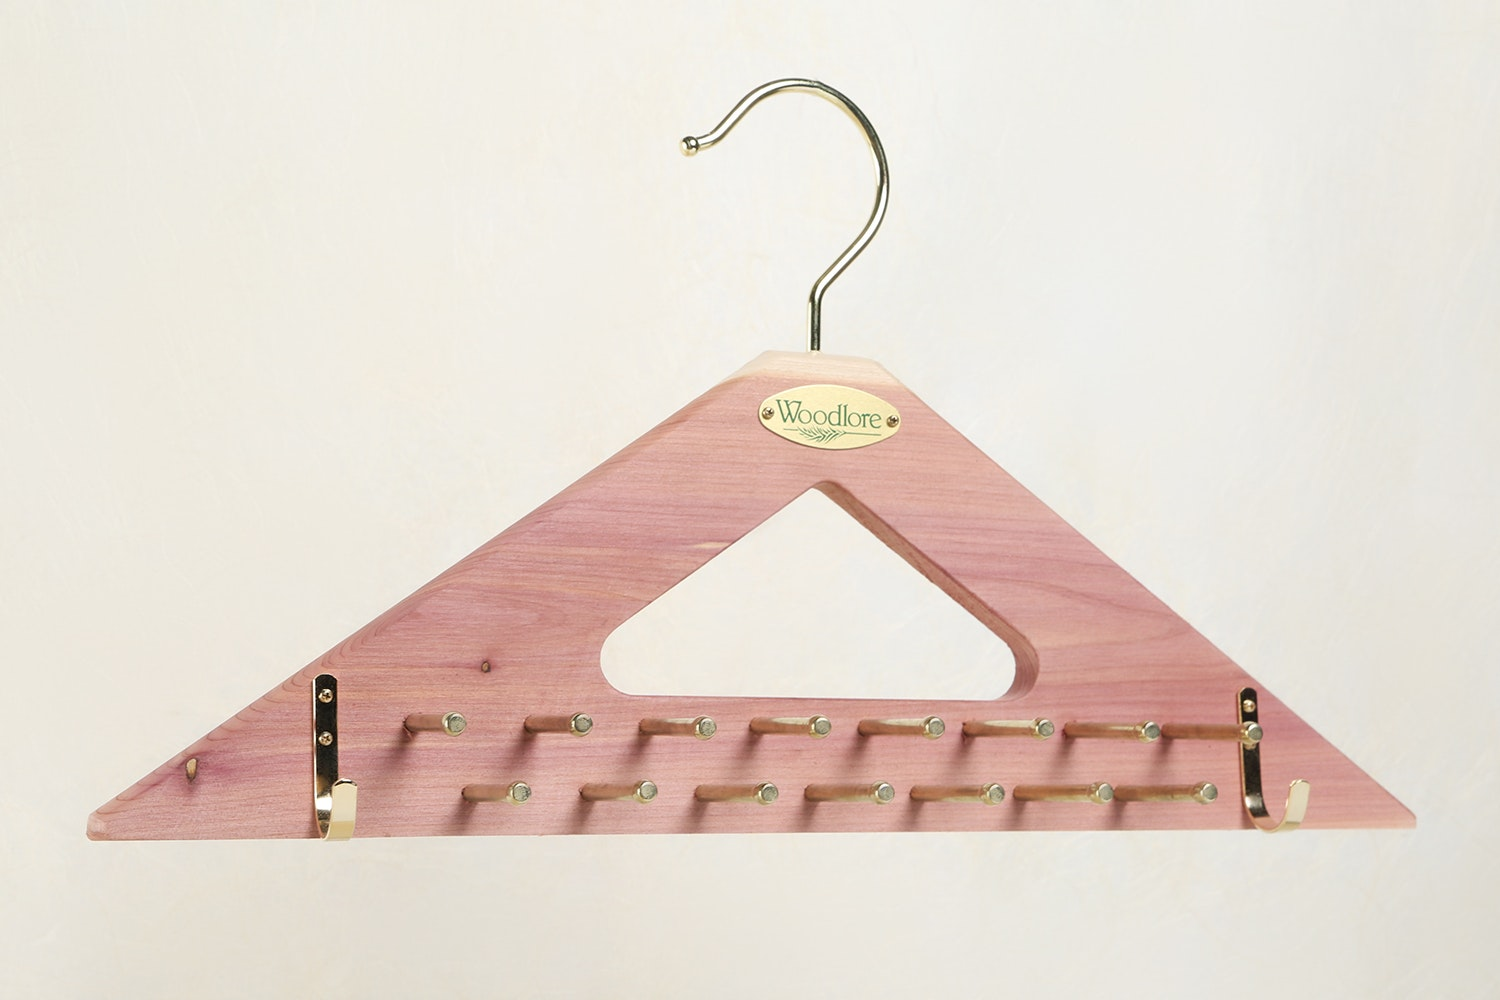 Woodlore Tie and Belt Hanger